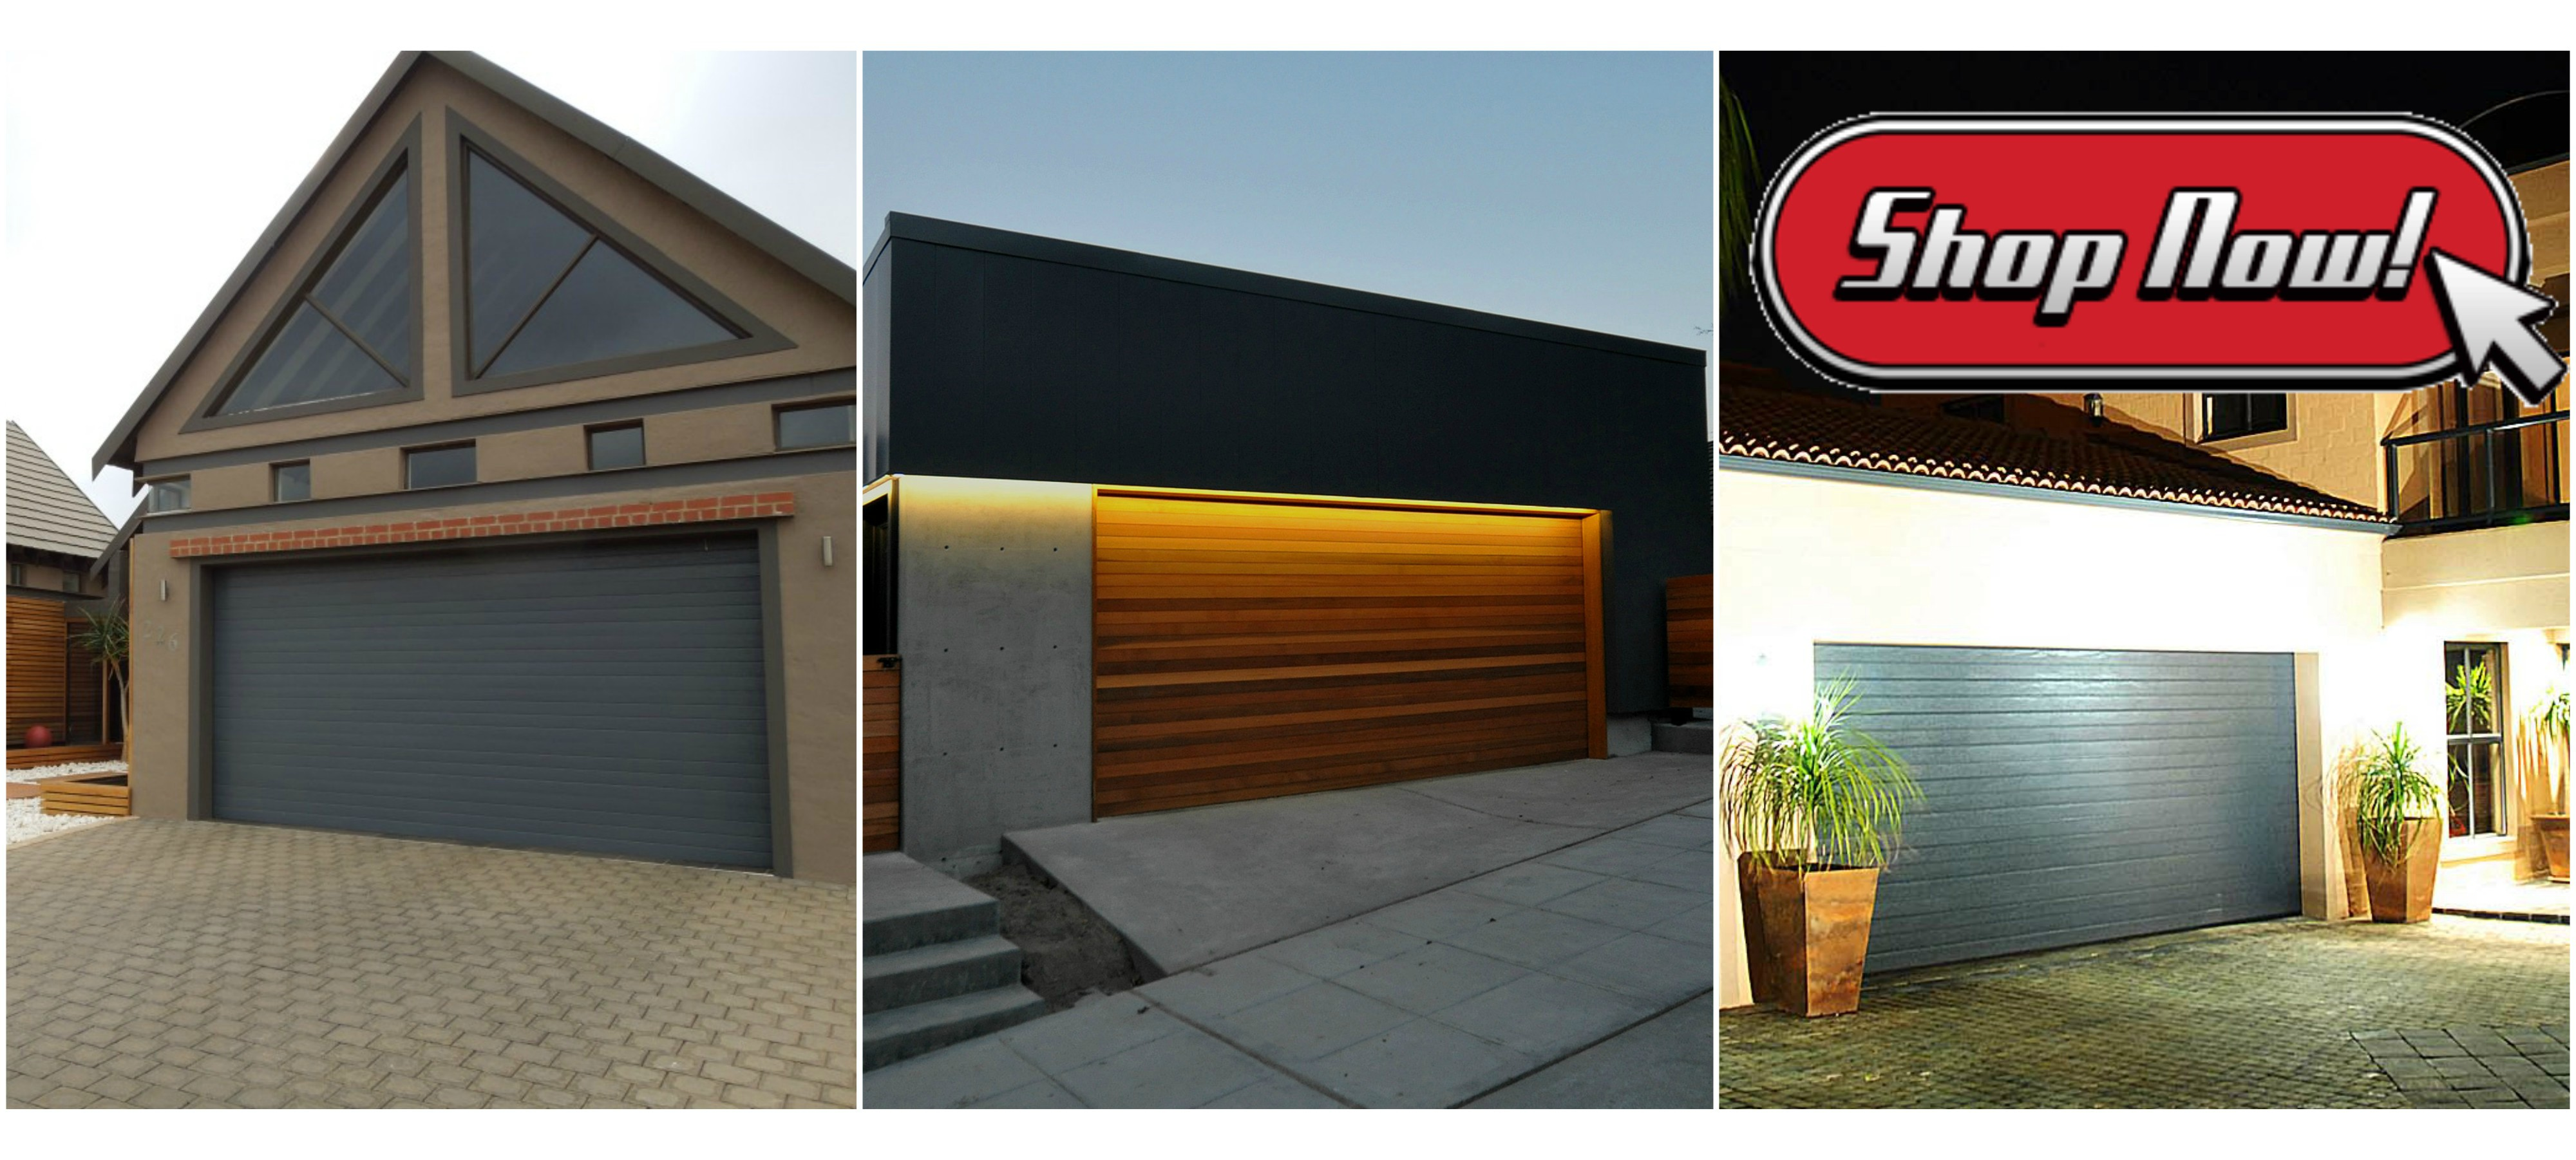 inserts door project decorative garage contemporary w chi panel residential this collect architecture repair sherwood brighton idea long